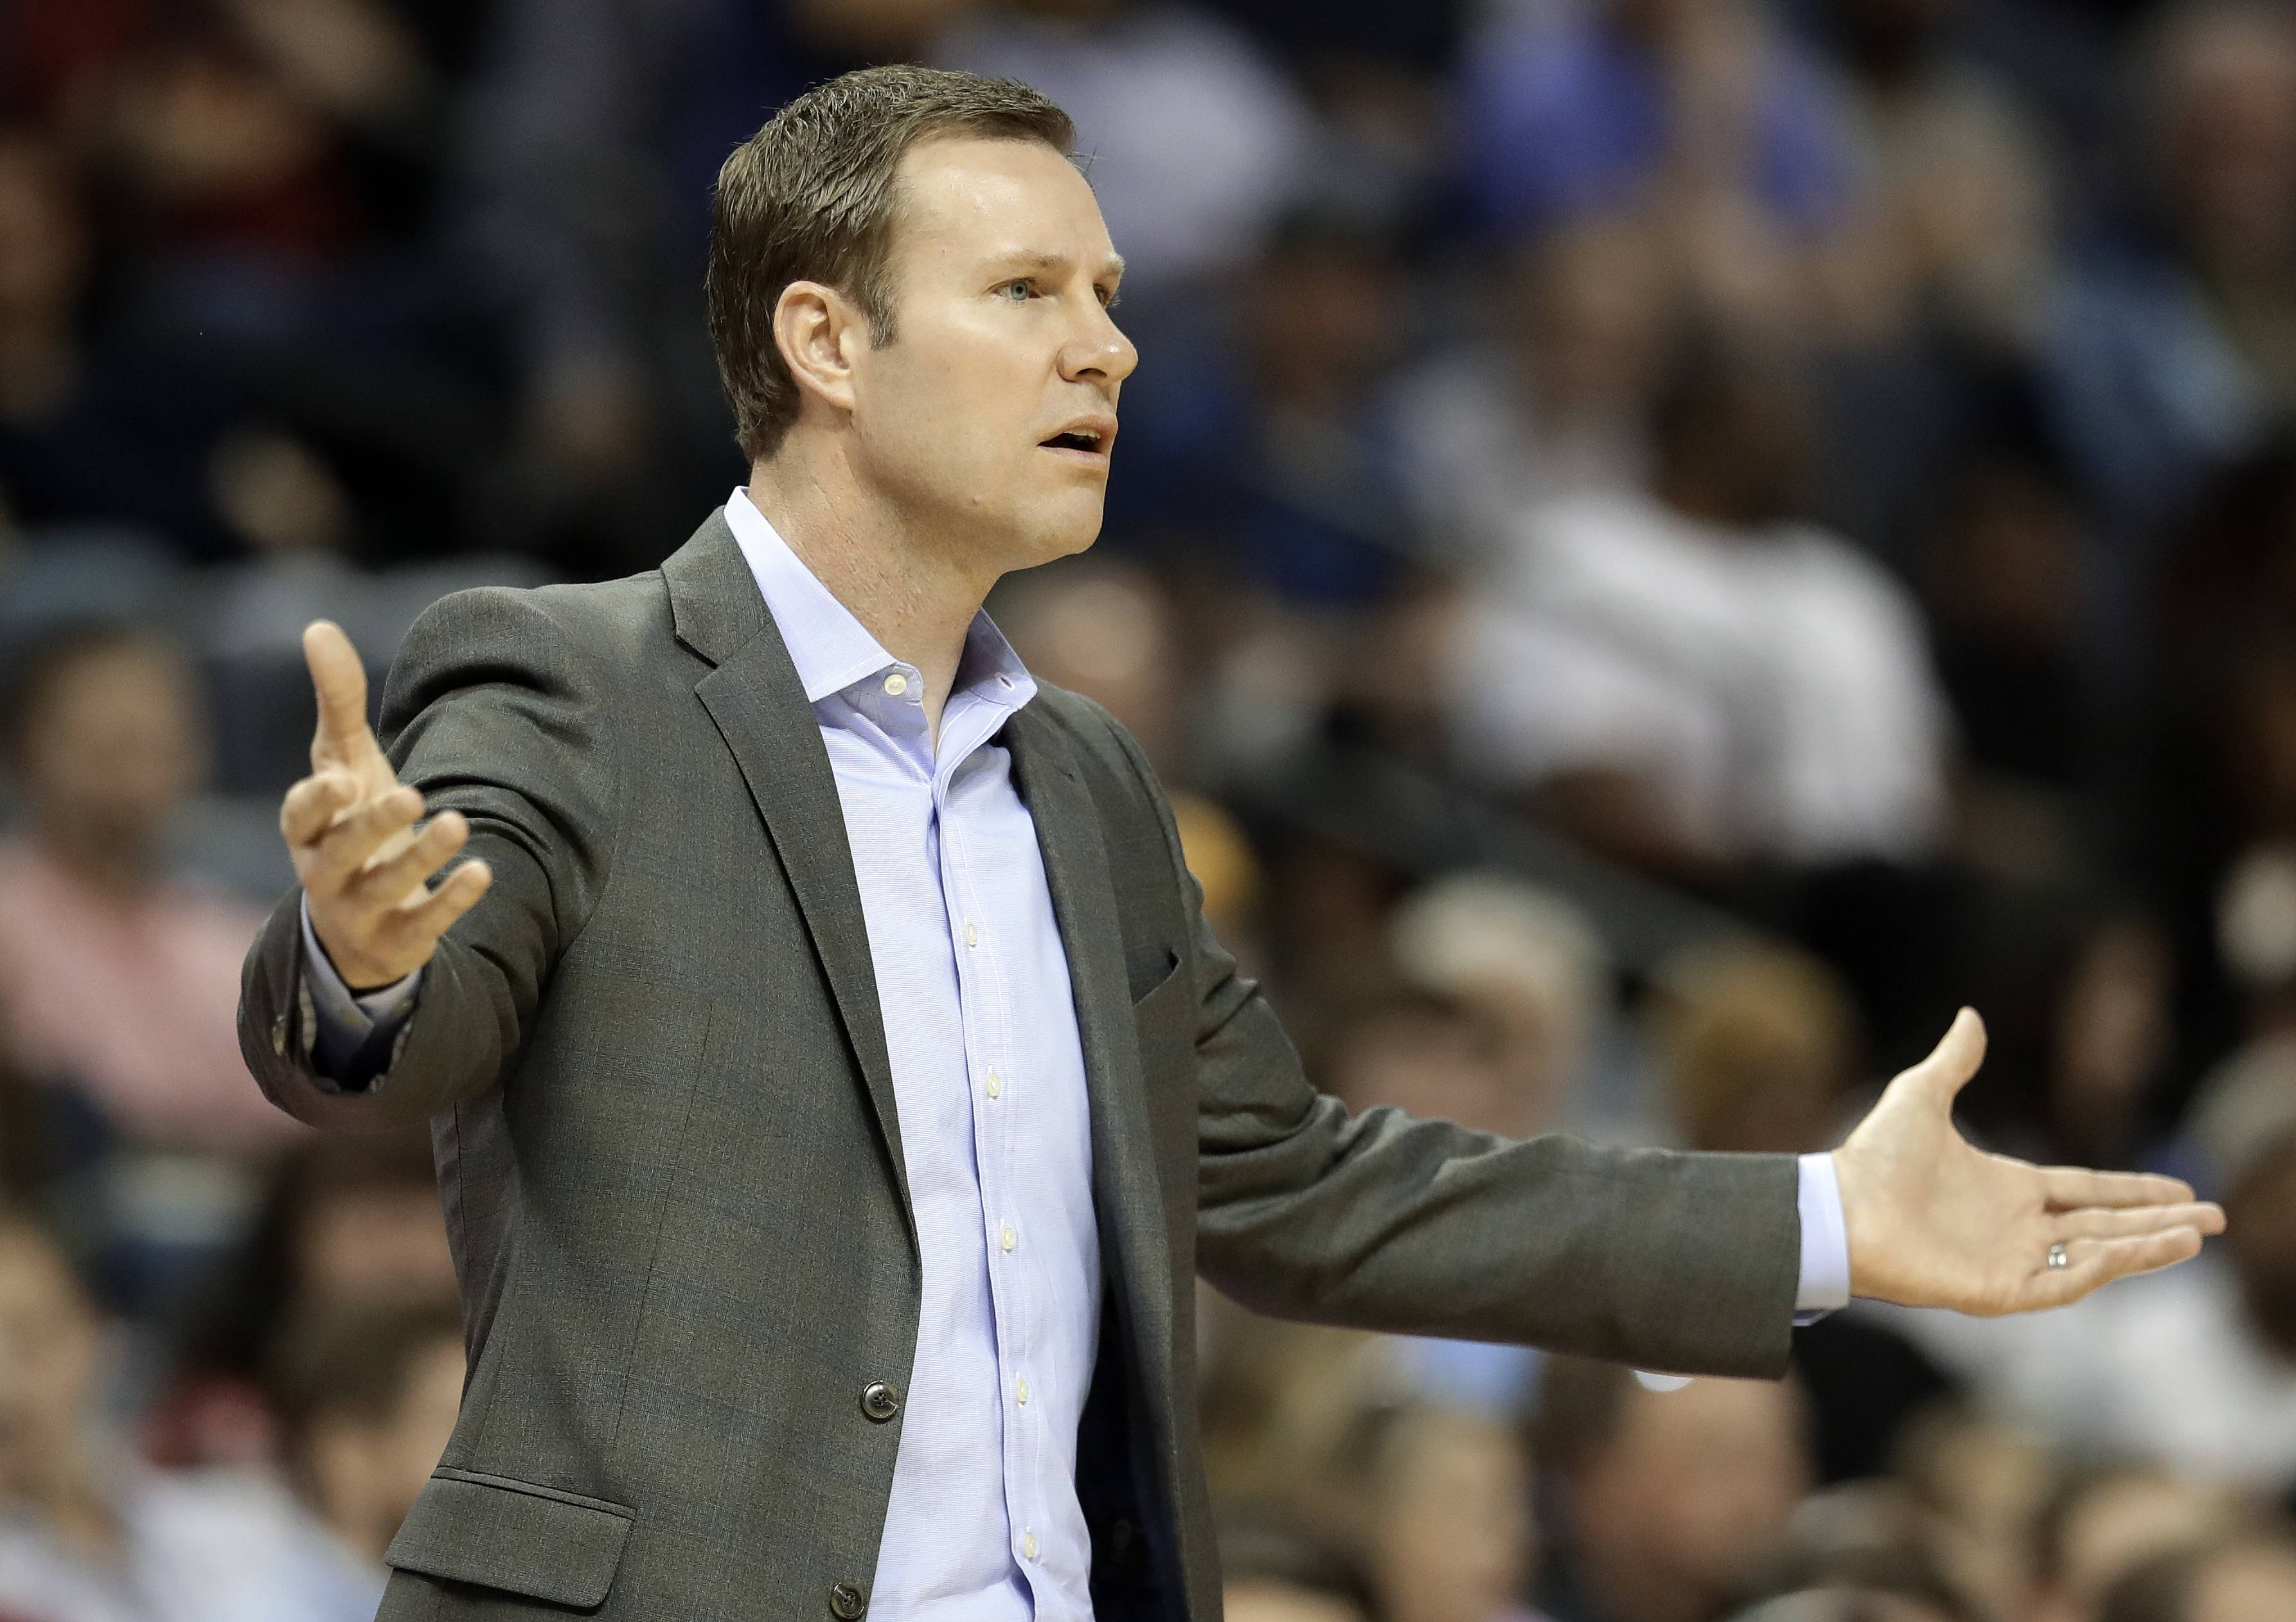 Chicago Bulls head coach Fred Hoiberg reacts to a call in the first half of an NBA basketball game against the Memphis Grizzlies, Thursday, March 15, 2018, in Memphis, Tenn. (AP Photo/Mark Humphrey)